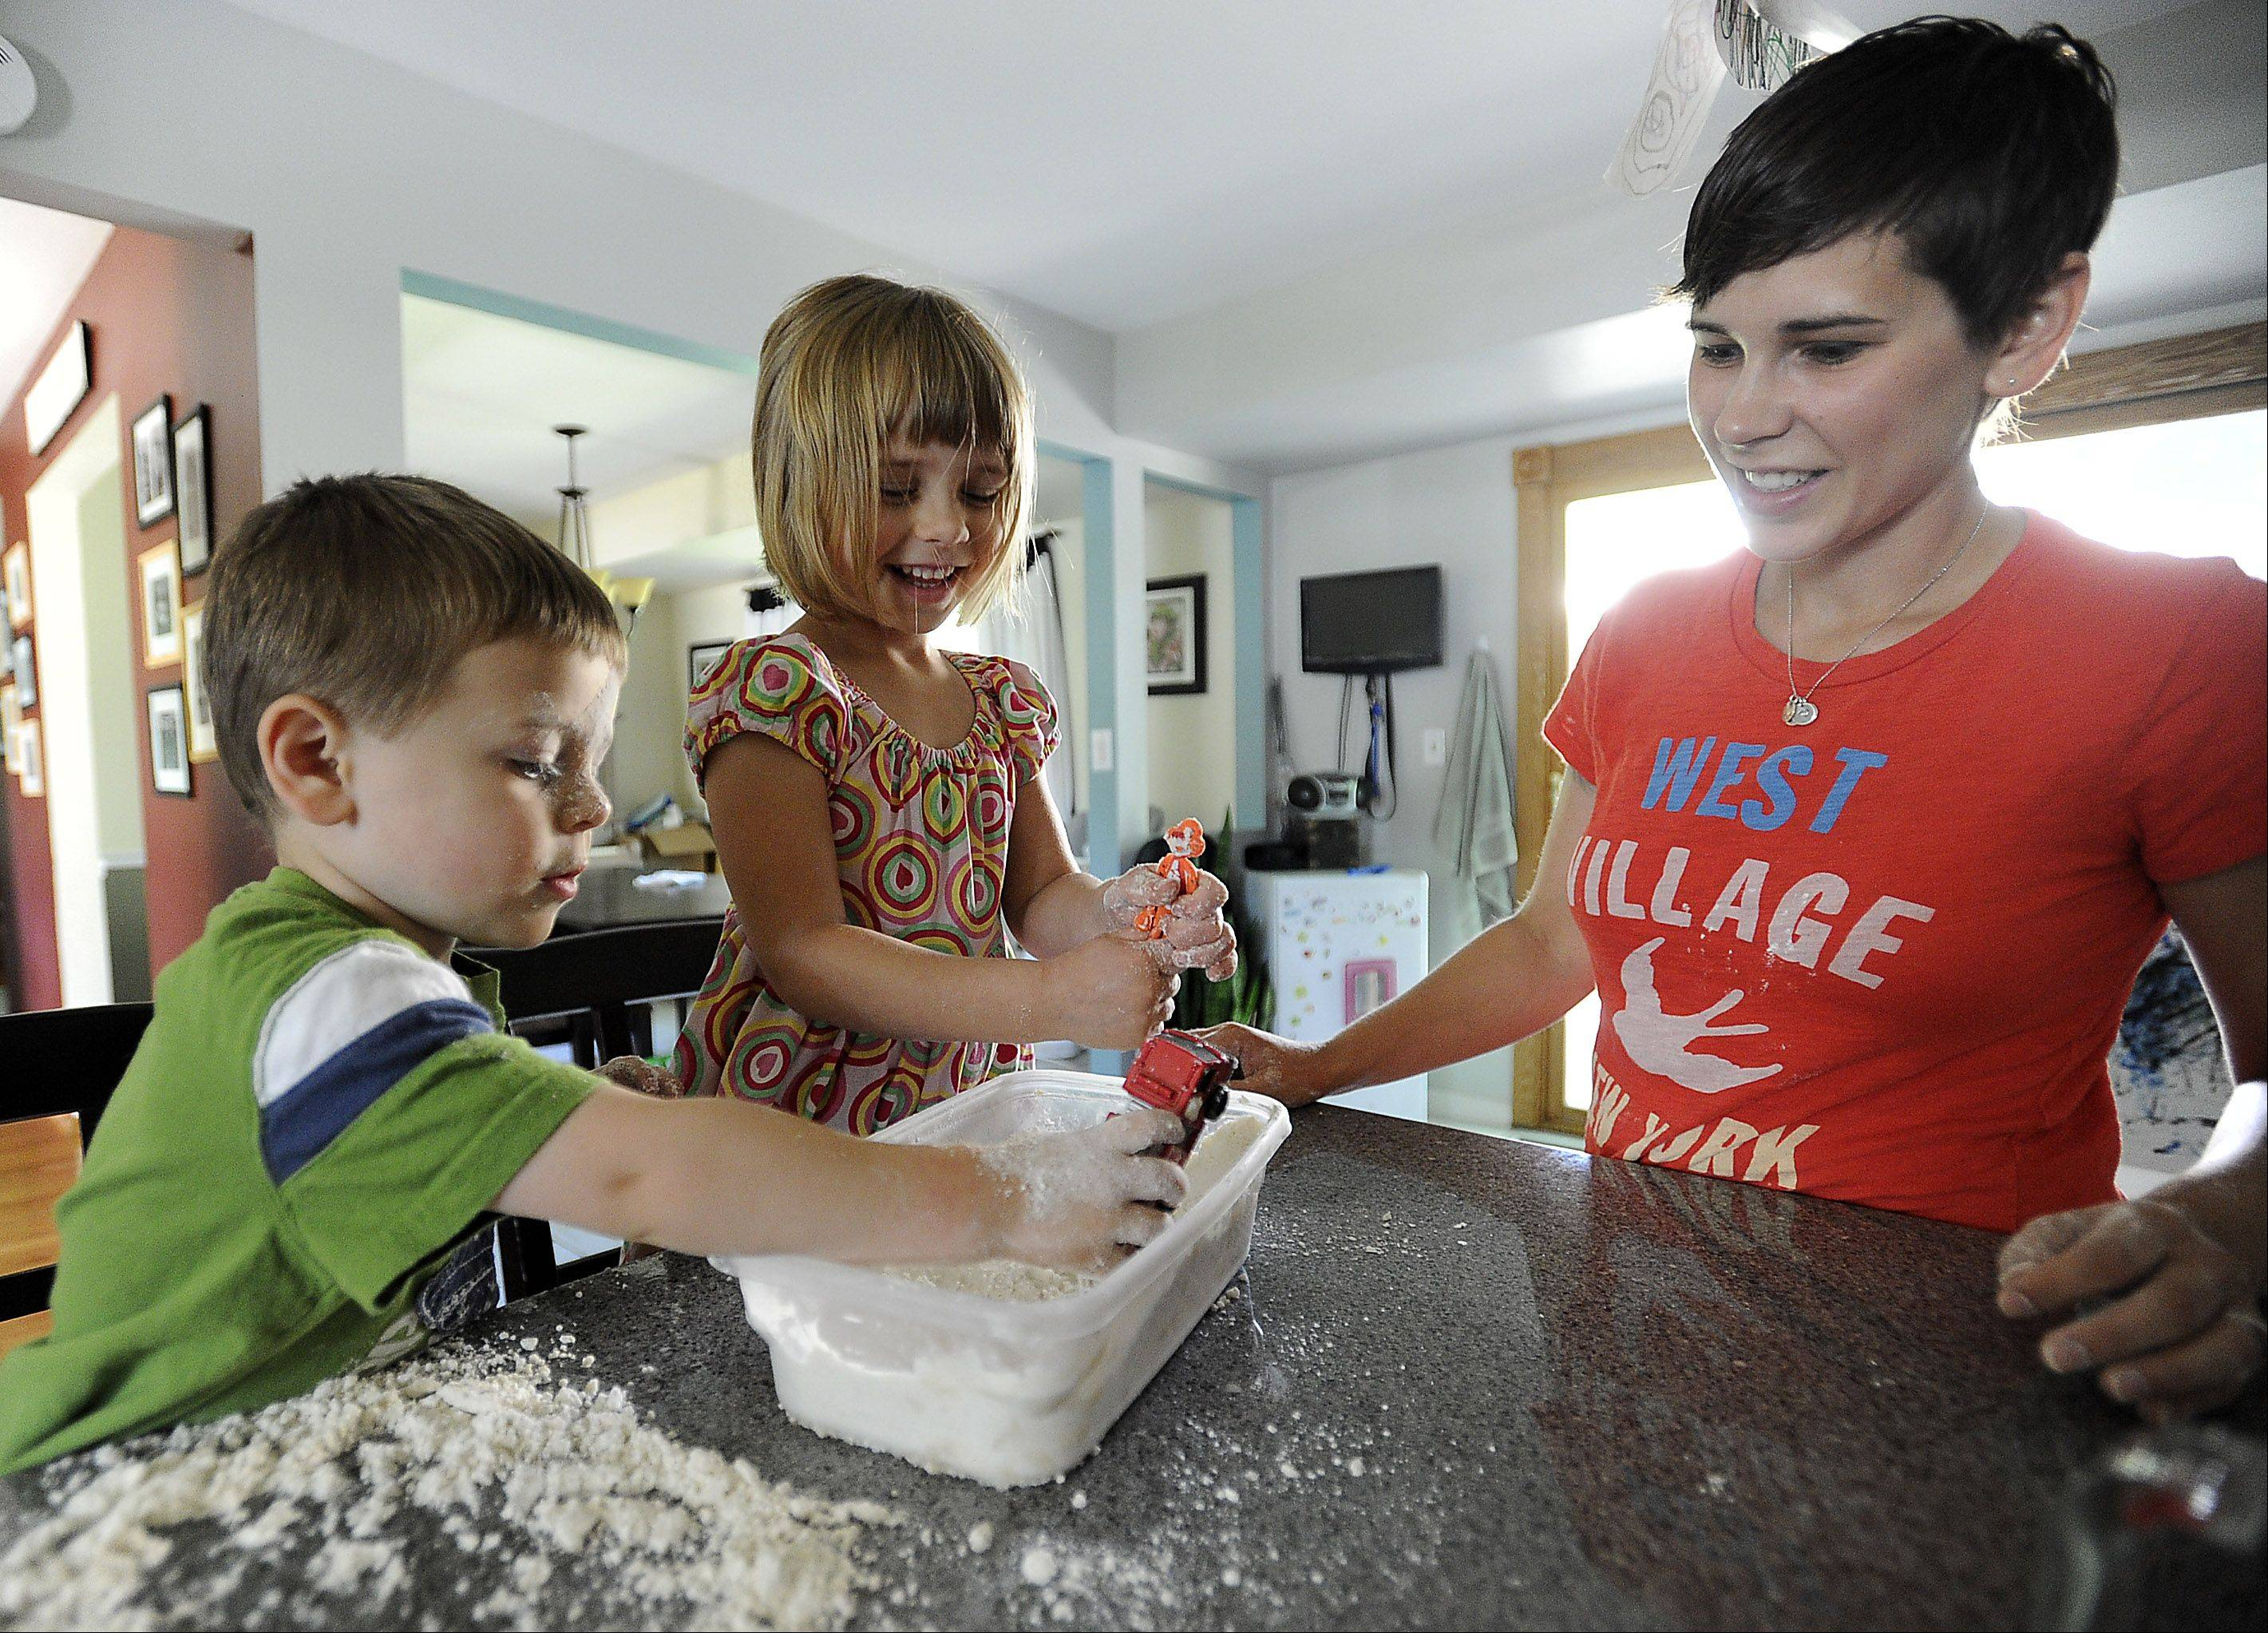 Author Rebecca Anderson of Schaumburg makes a homemade flour and baby oil mixture for her kids, Justin, 2, and Lily, 4.